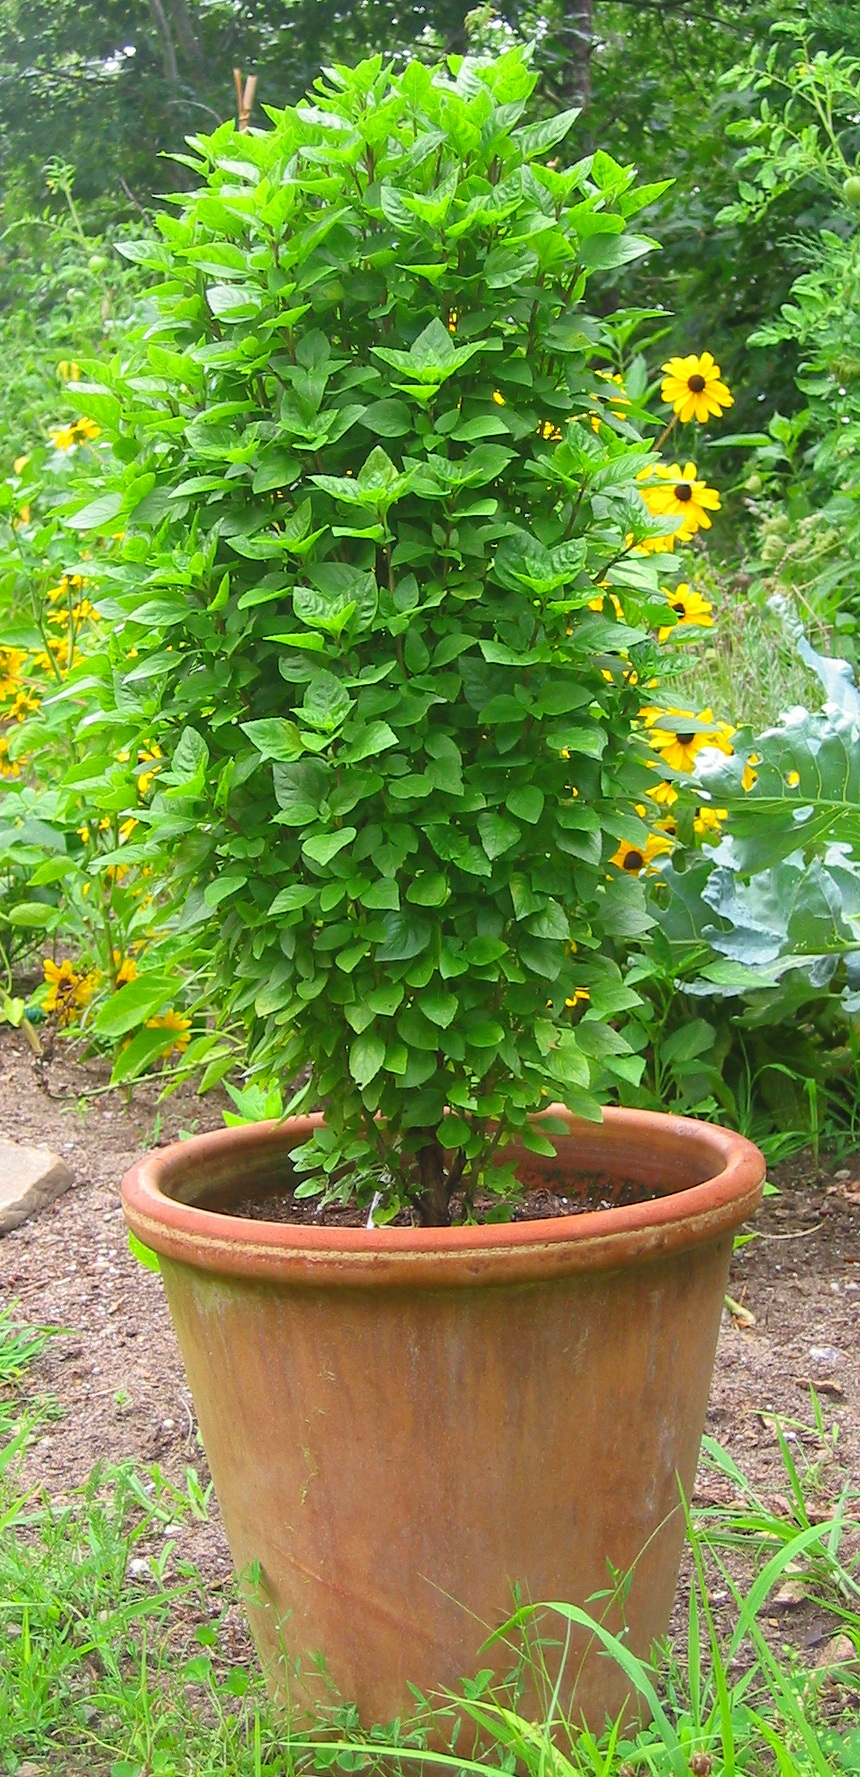 Greek Columnar Basil